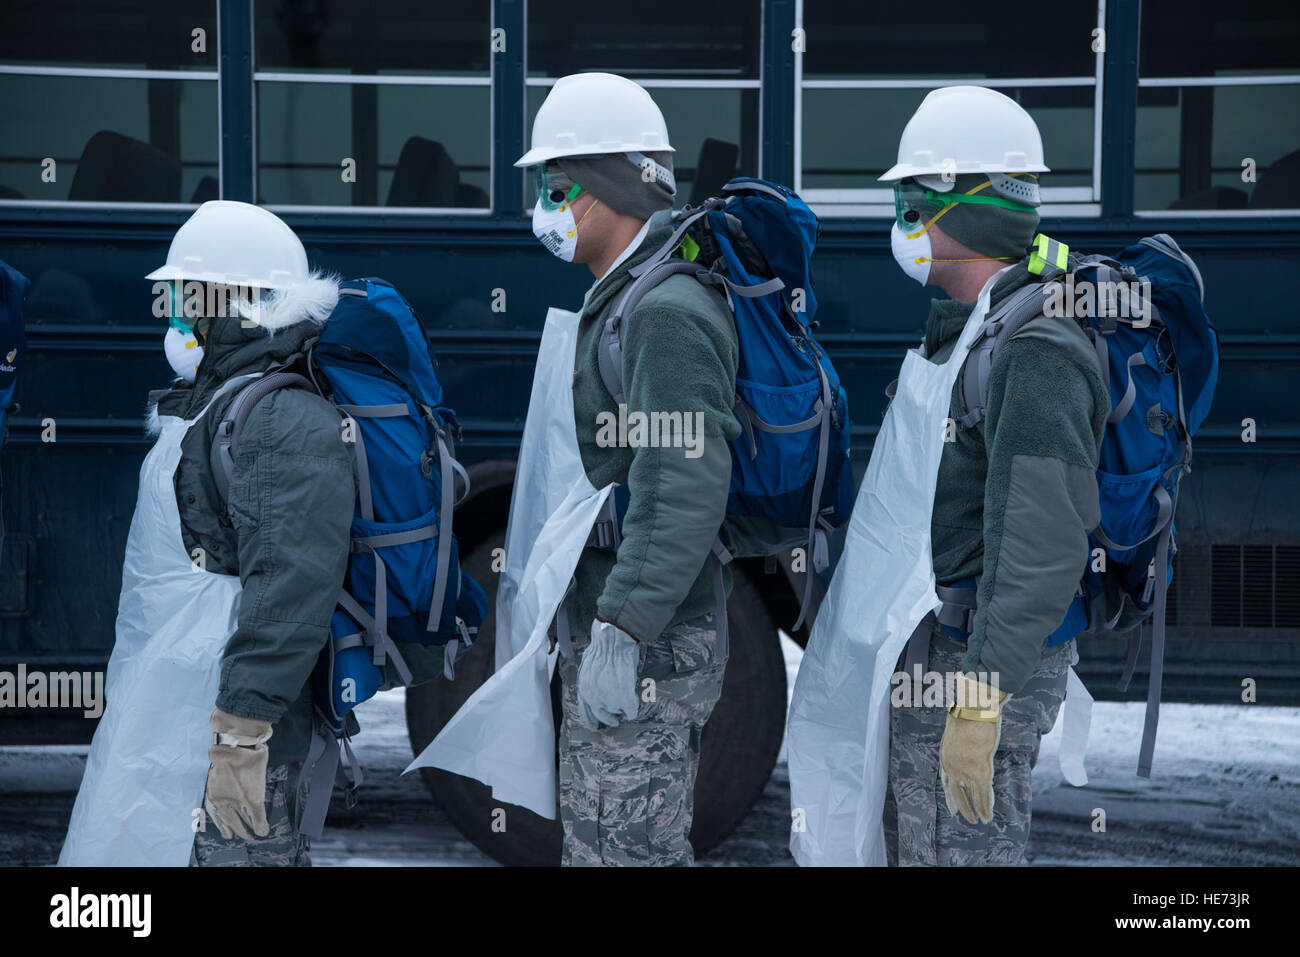 Airmen from the 35th Force Support Squadron arrive at the scene of a simulated aircraft crash at Misawa Air Base, - Stock Image